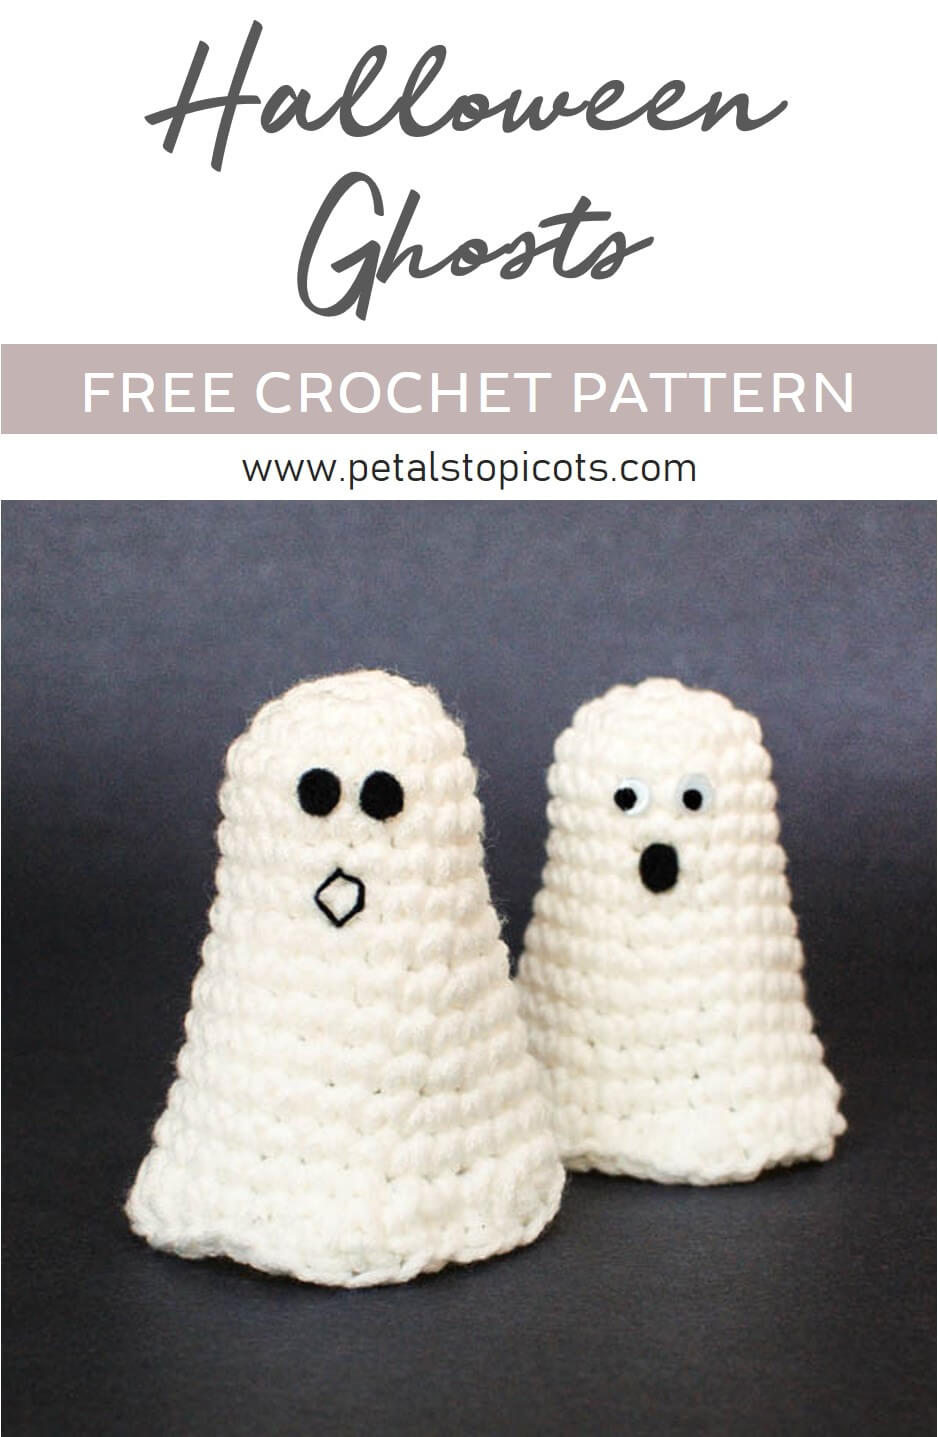 This adorable ghost crochet pattern is perfect for your Halloween decor or for adding to little treat bags! #petalstopicots